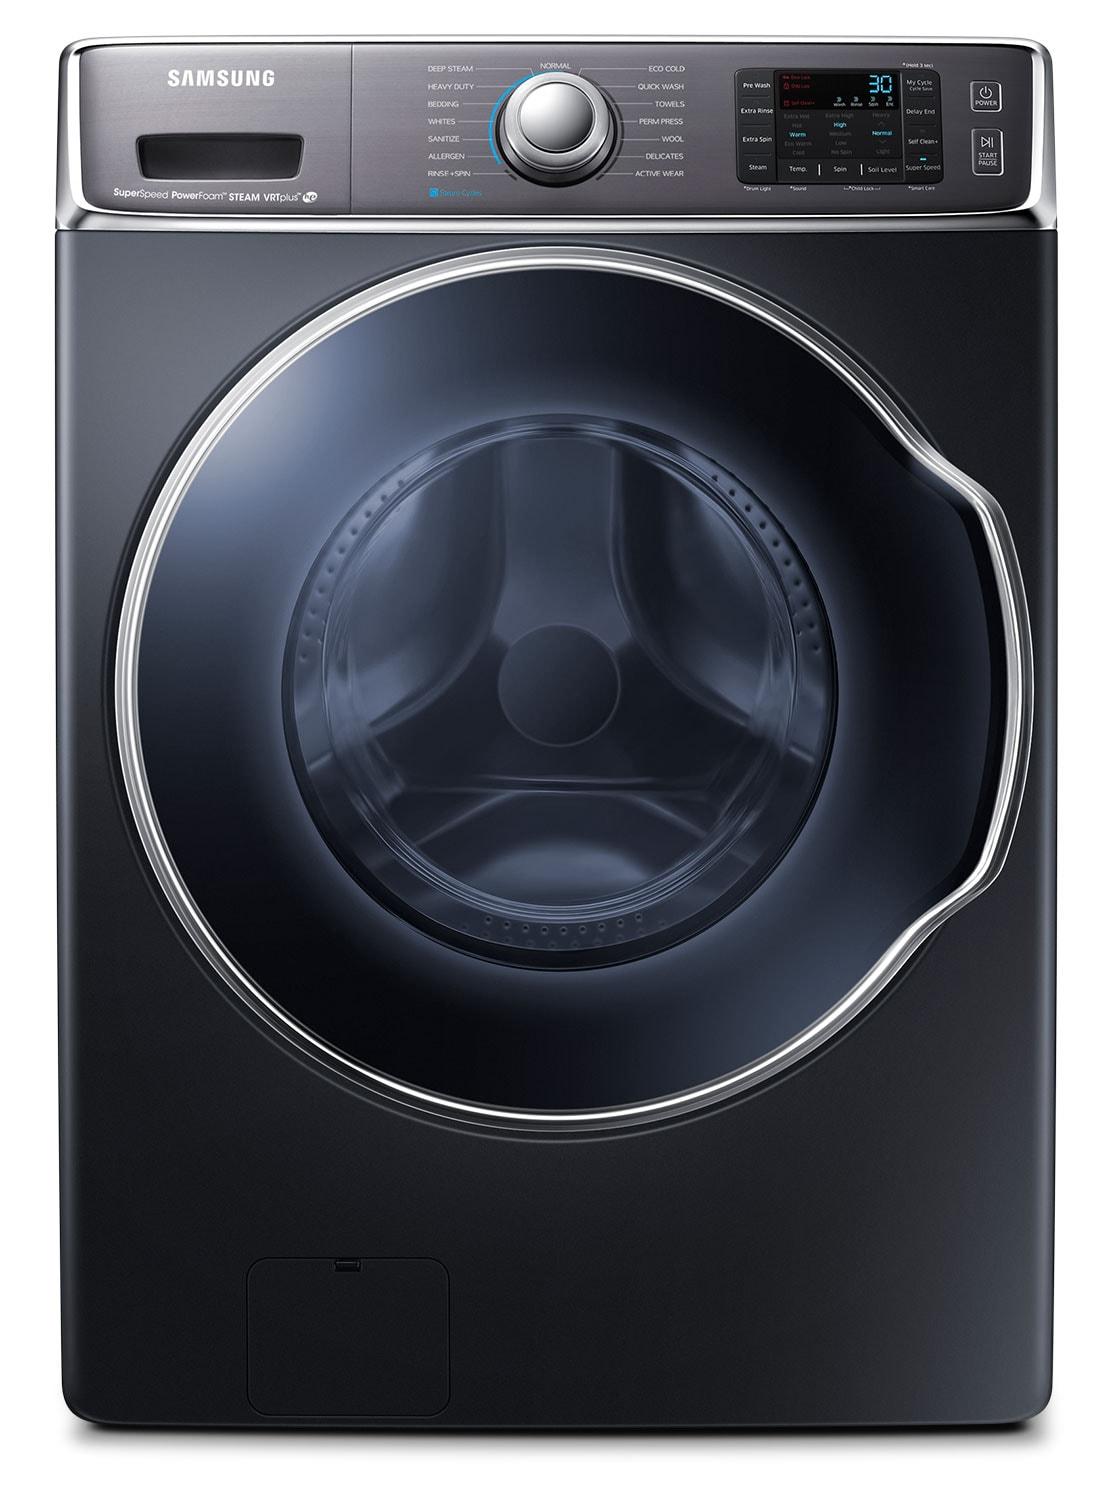 Samsung Charcoal Front-Load Washer (6.5 Cu. Ft. IEC) - WF56H9100AG